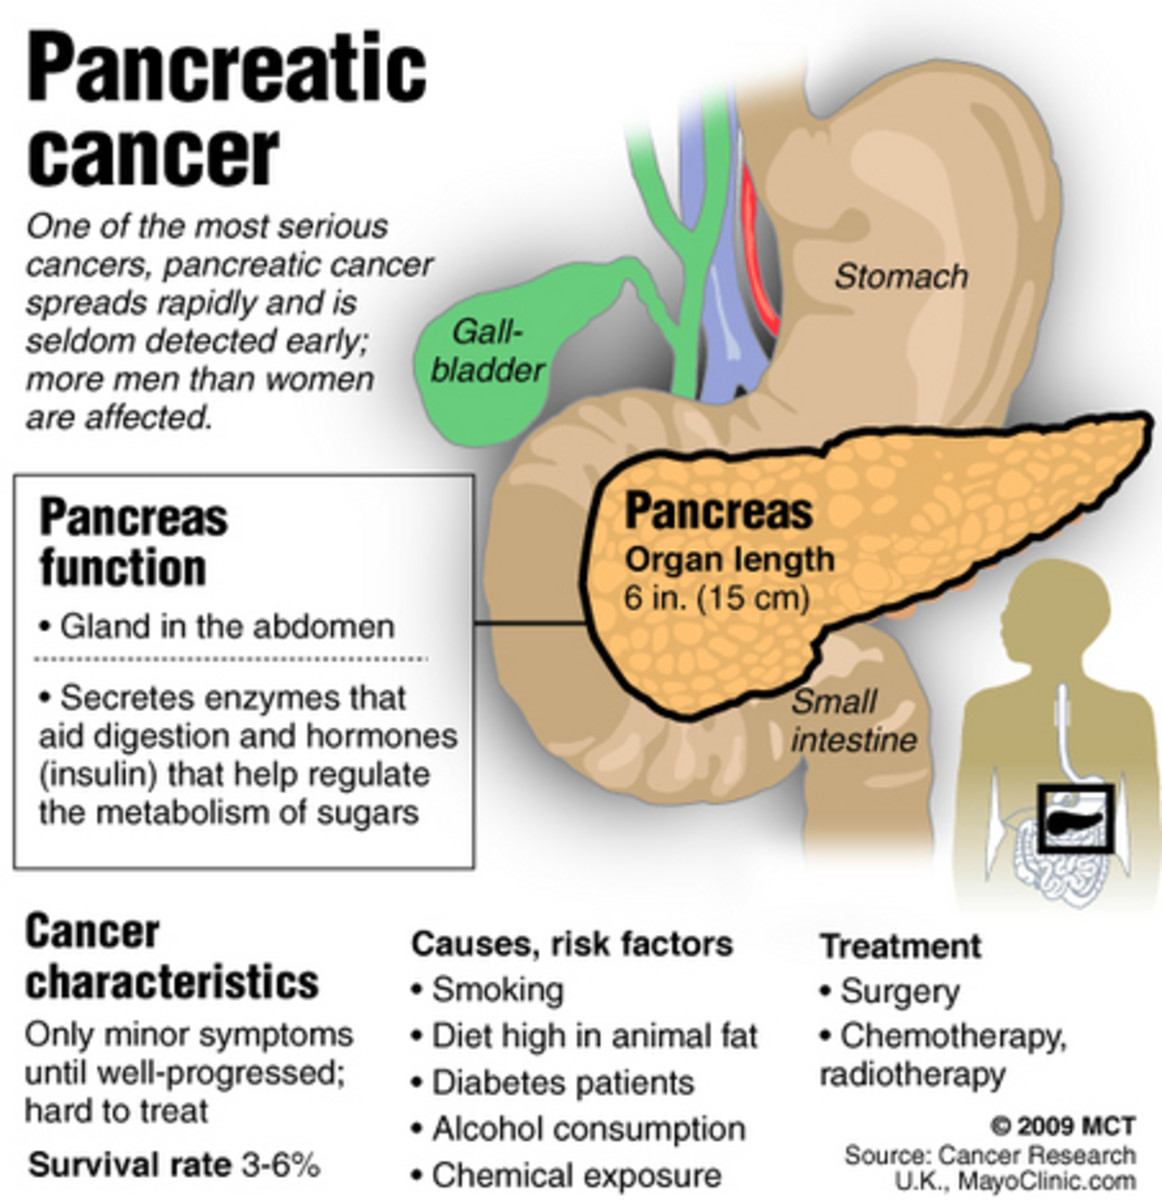 2014- New Hope For Pancreatic Cancer